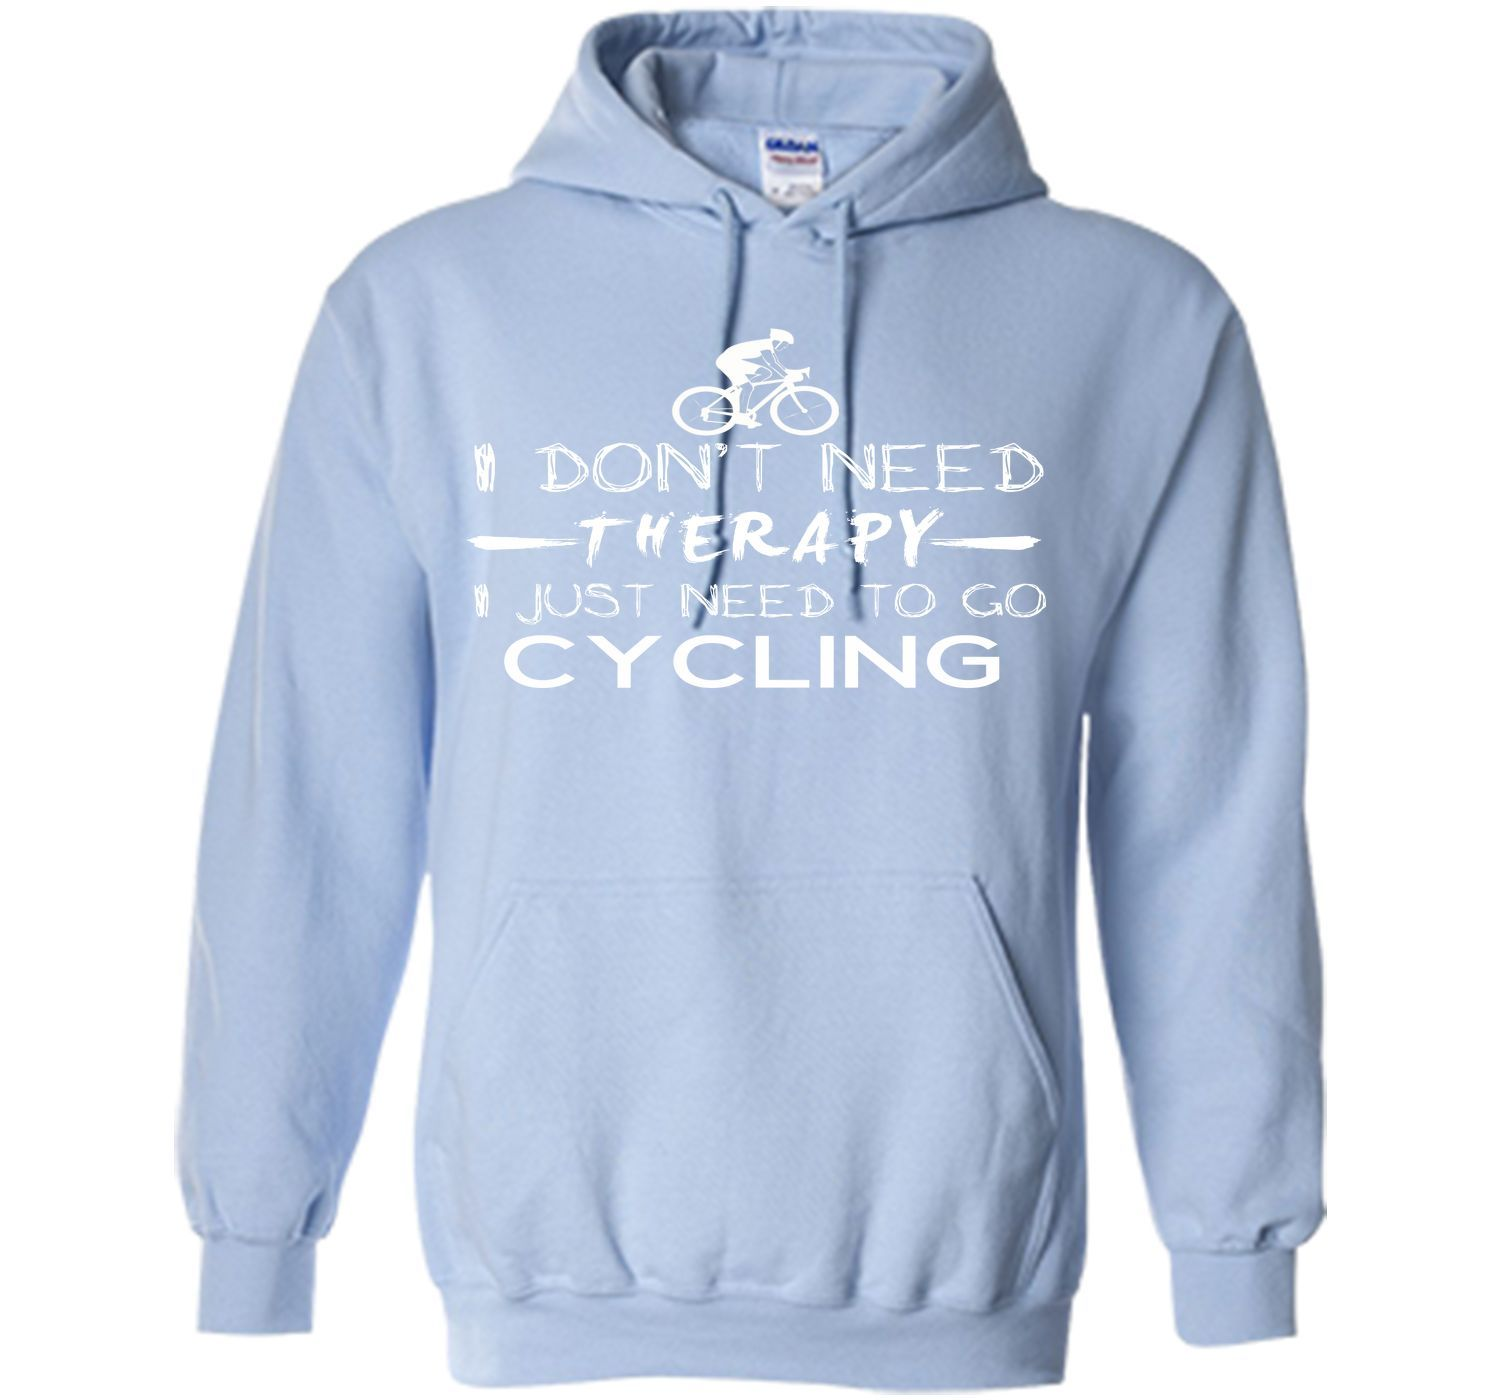 I don't need therapy I just need to go cycling T-Shirt